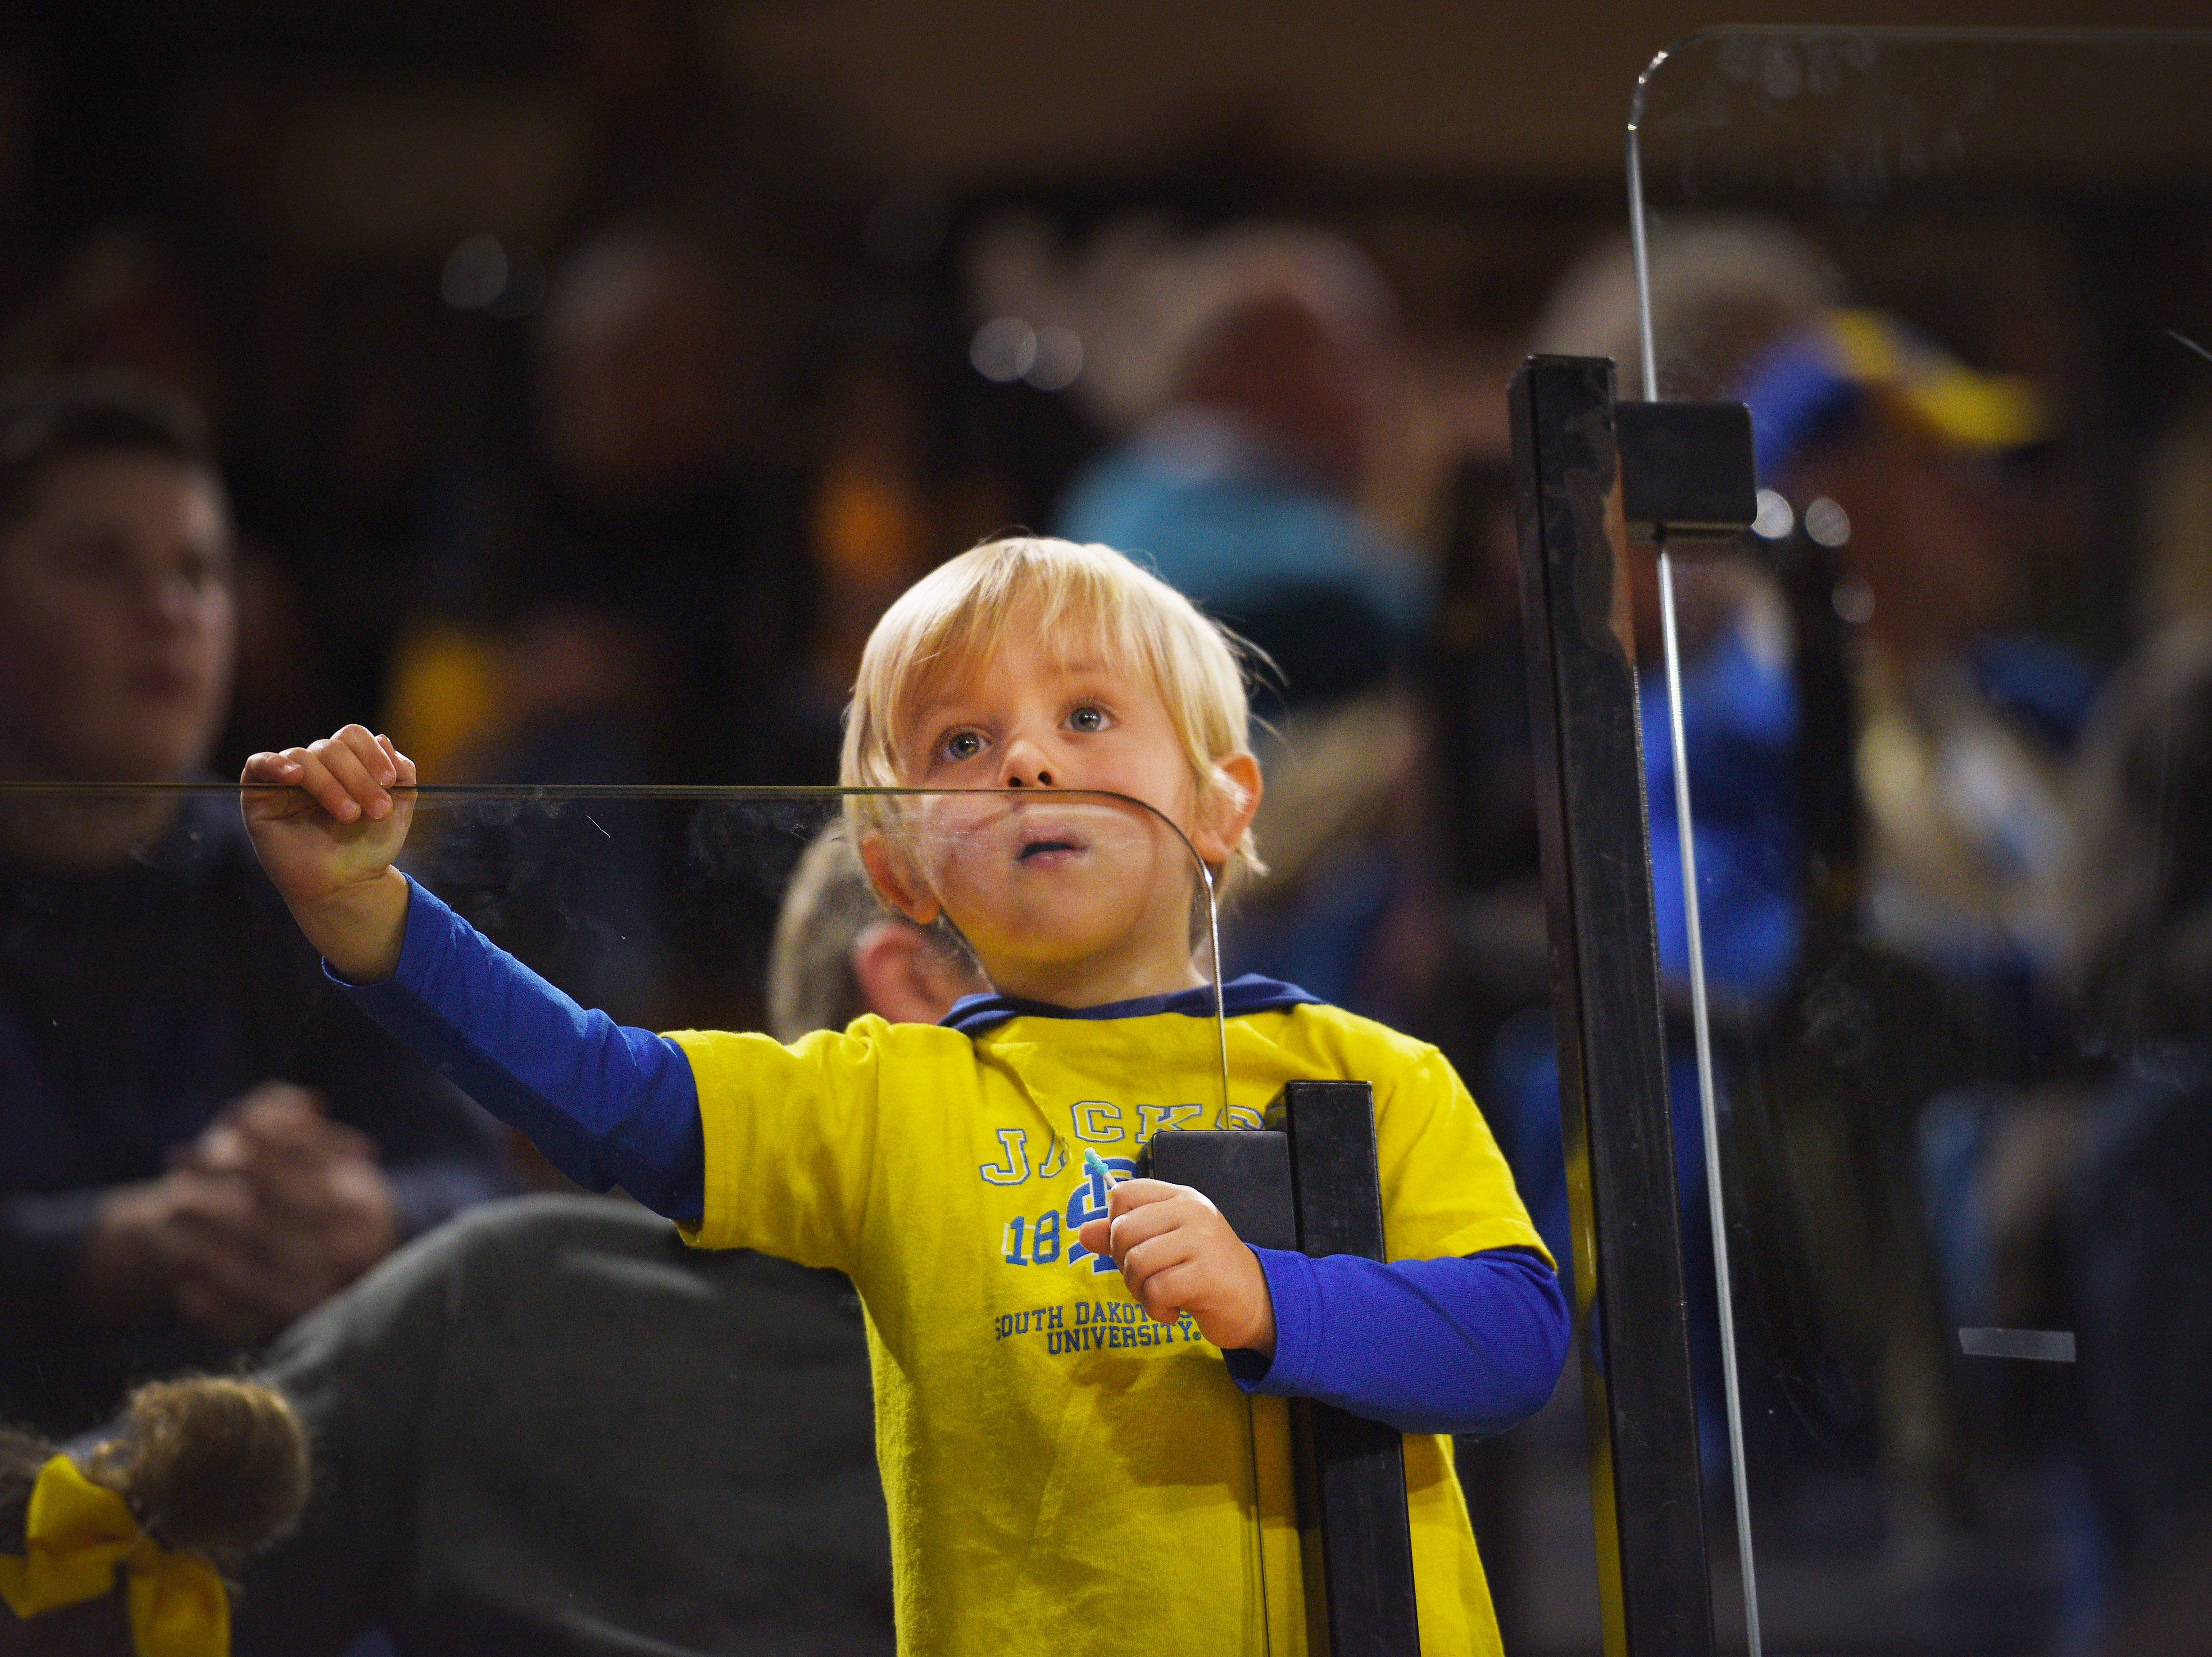 A young SDSU fan watches the game against Green Bay Thursday, Nov. 29, at Frost Arena in Brookings.